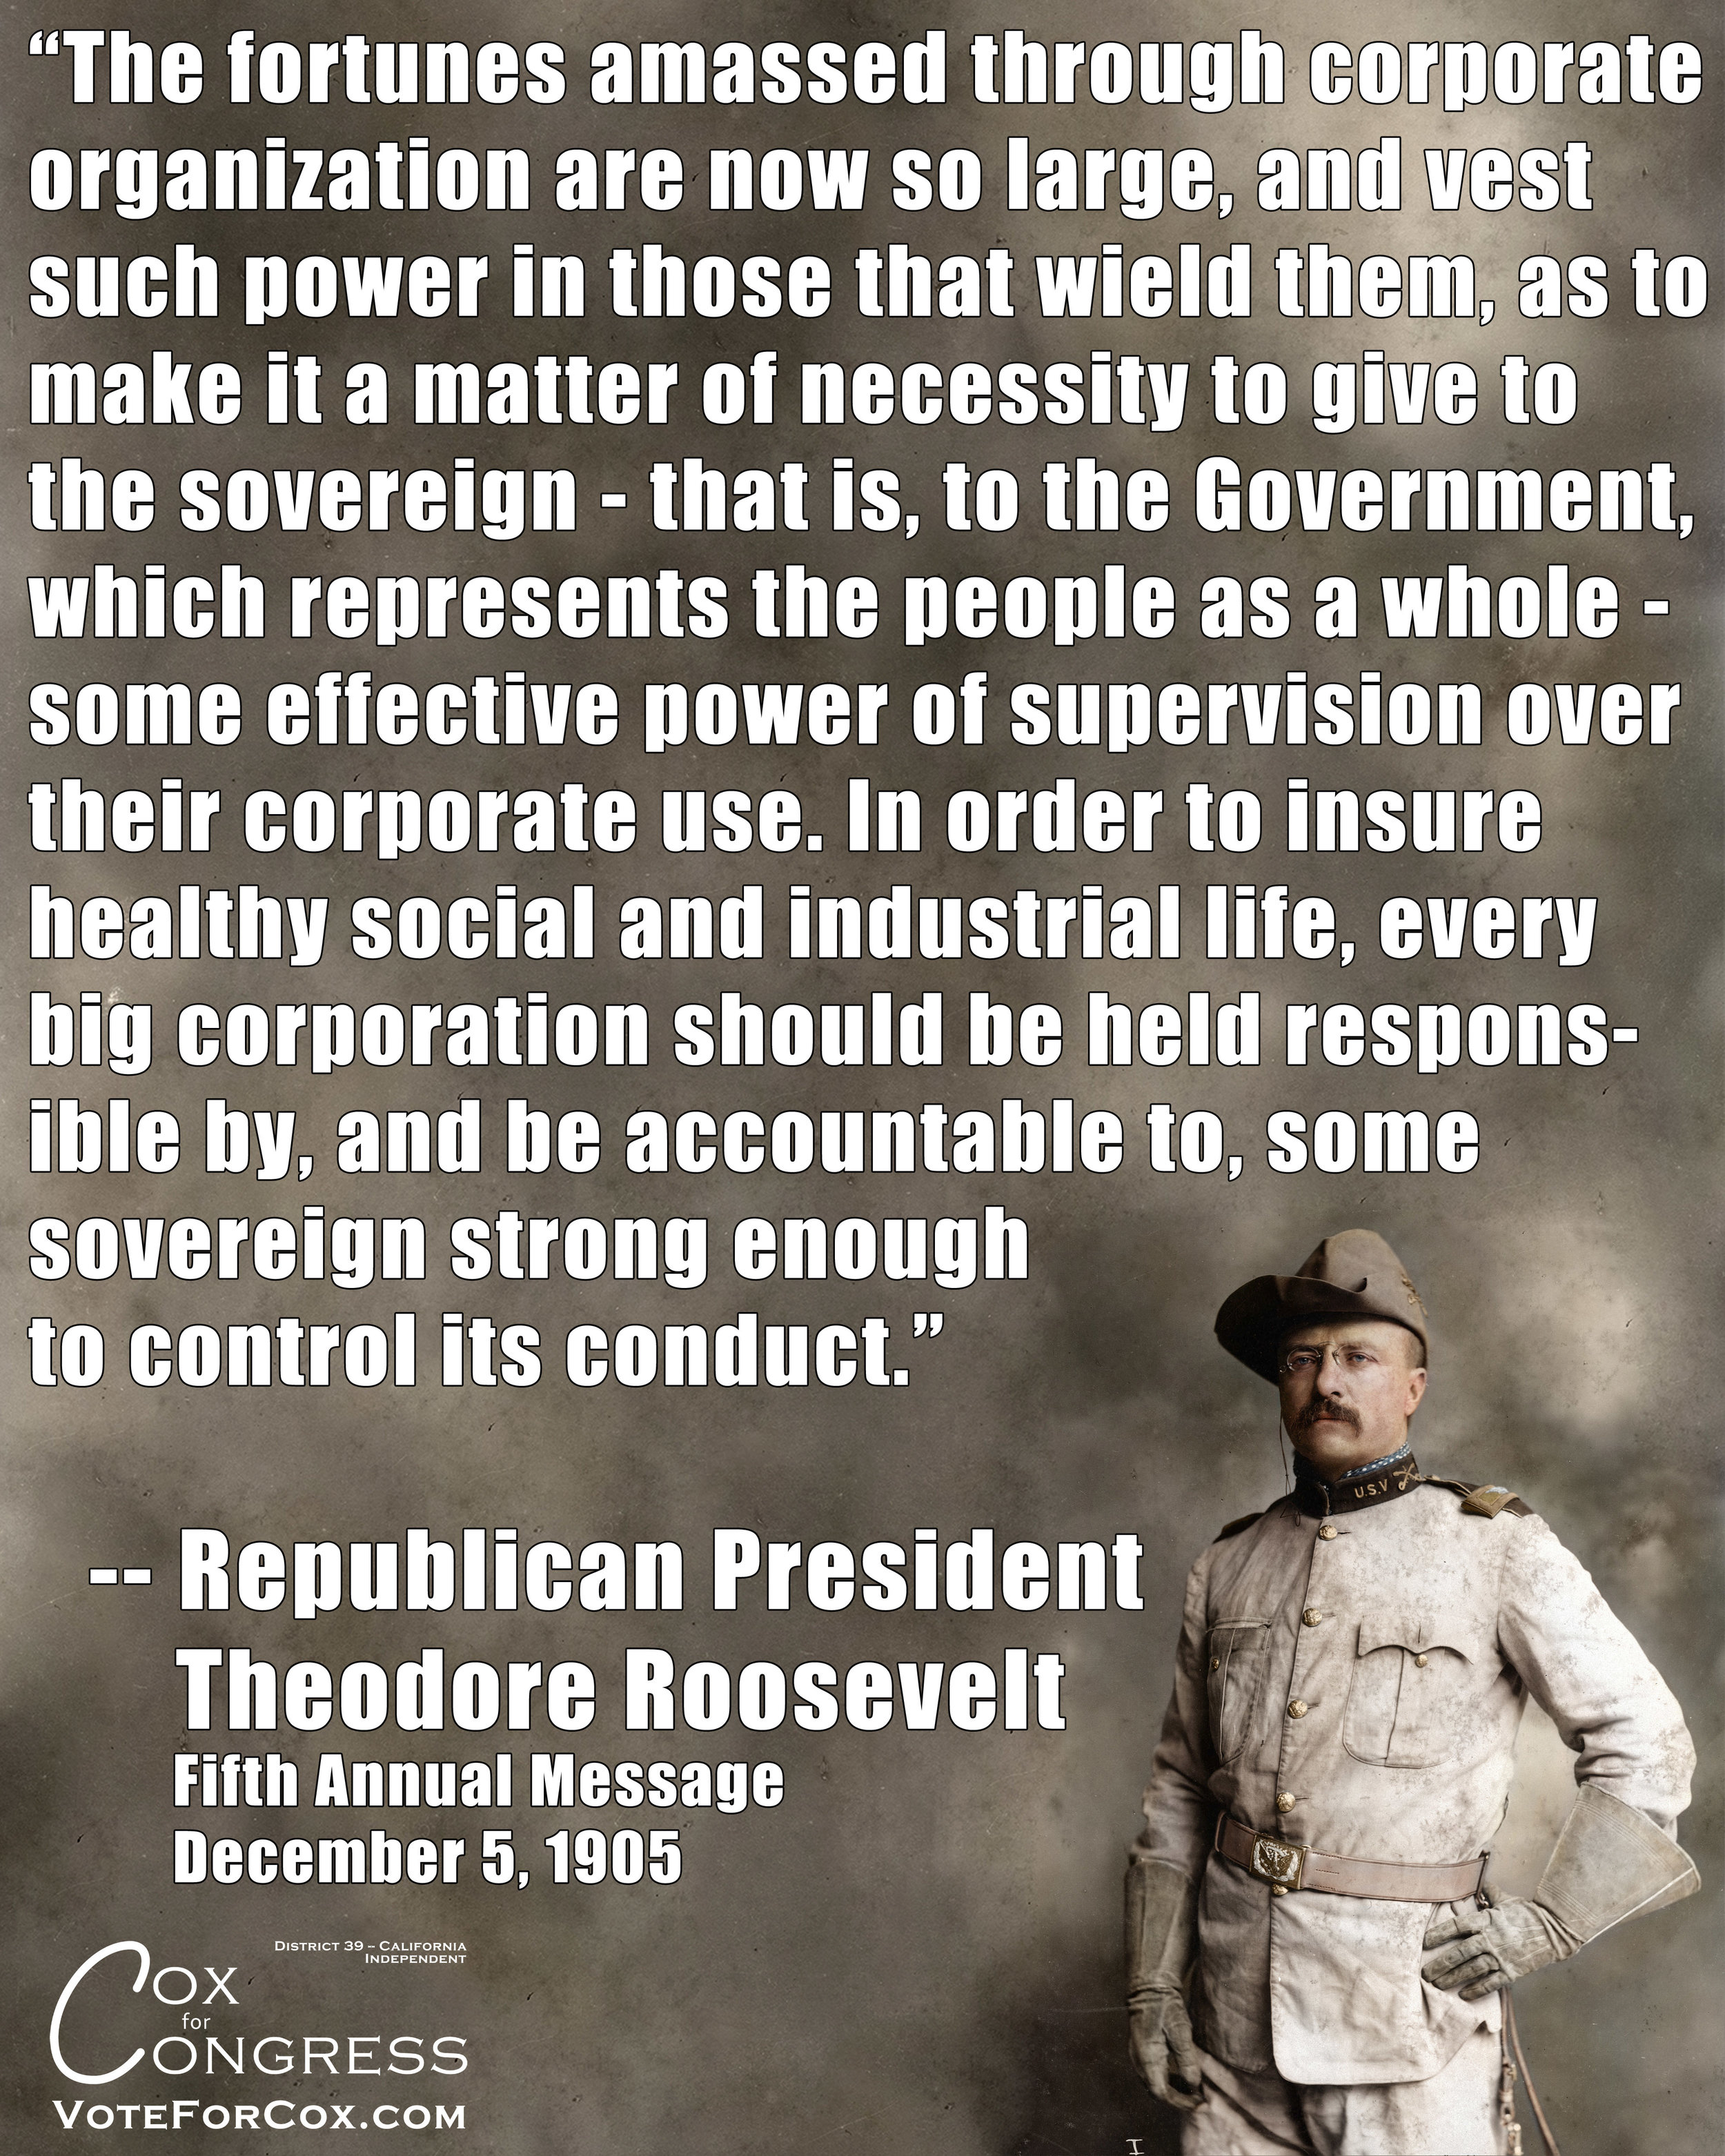 I always feel it's an interesting fact to point out the political parties of historical figures such as Theodore Roosevelt, because it shows how far things have shifted over time. He was a Republican at this time.